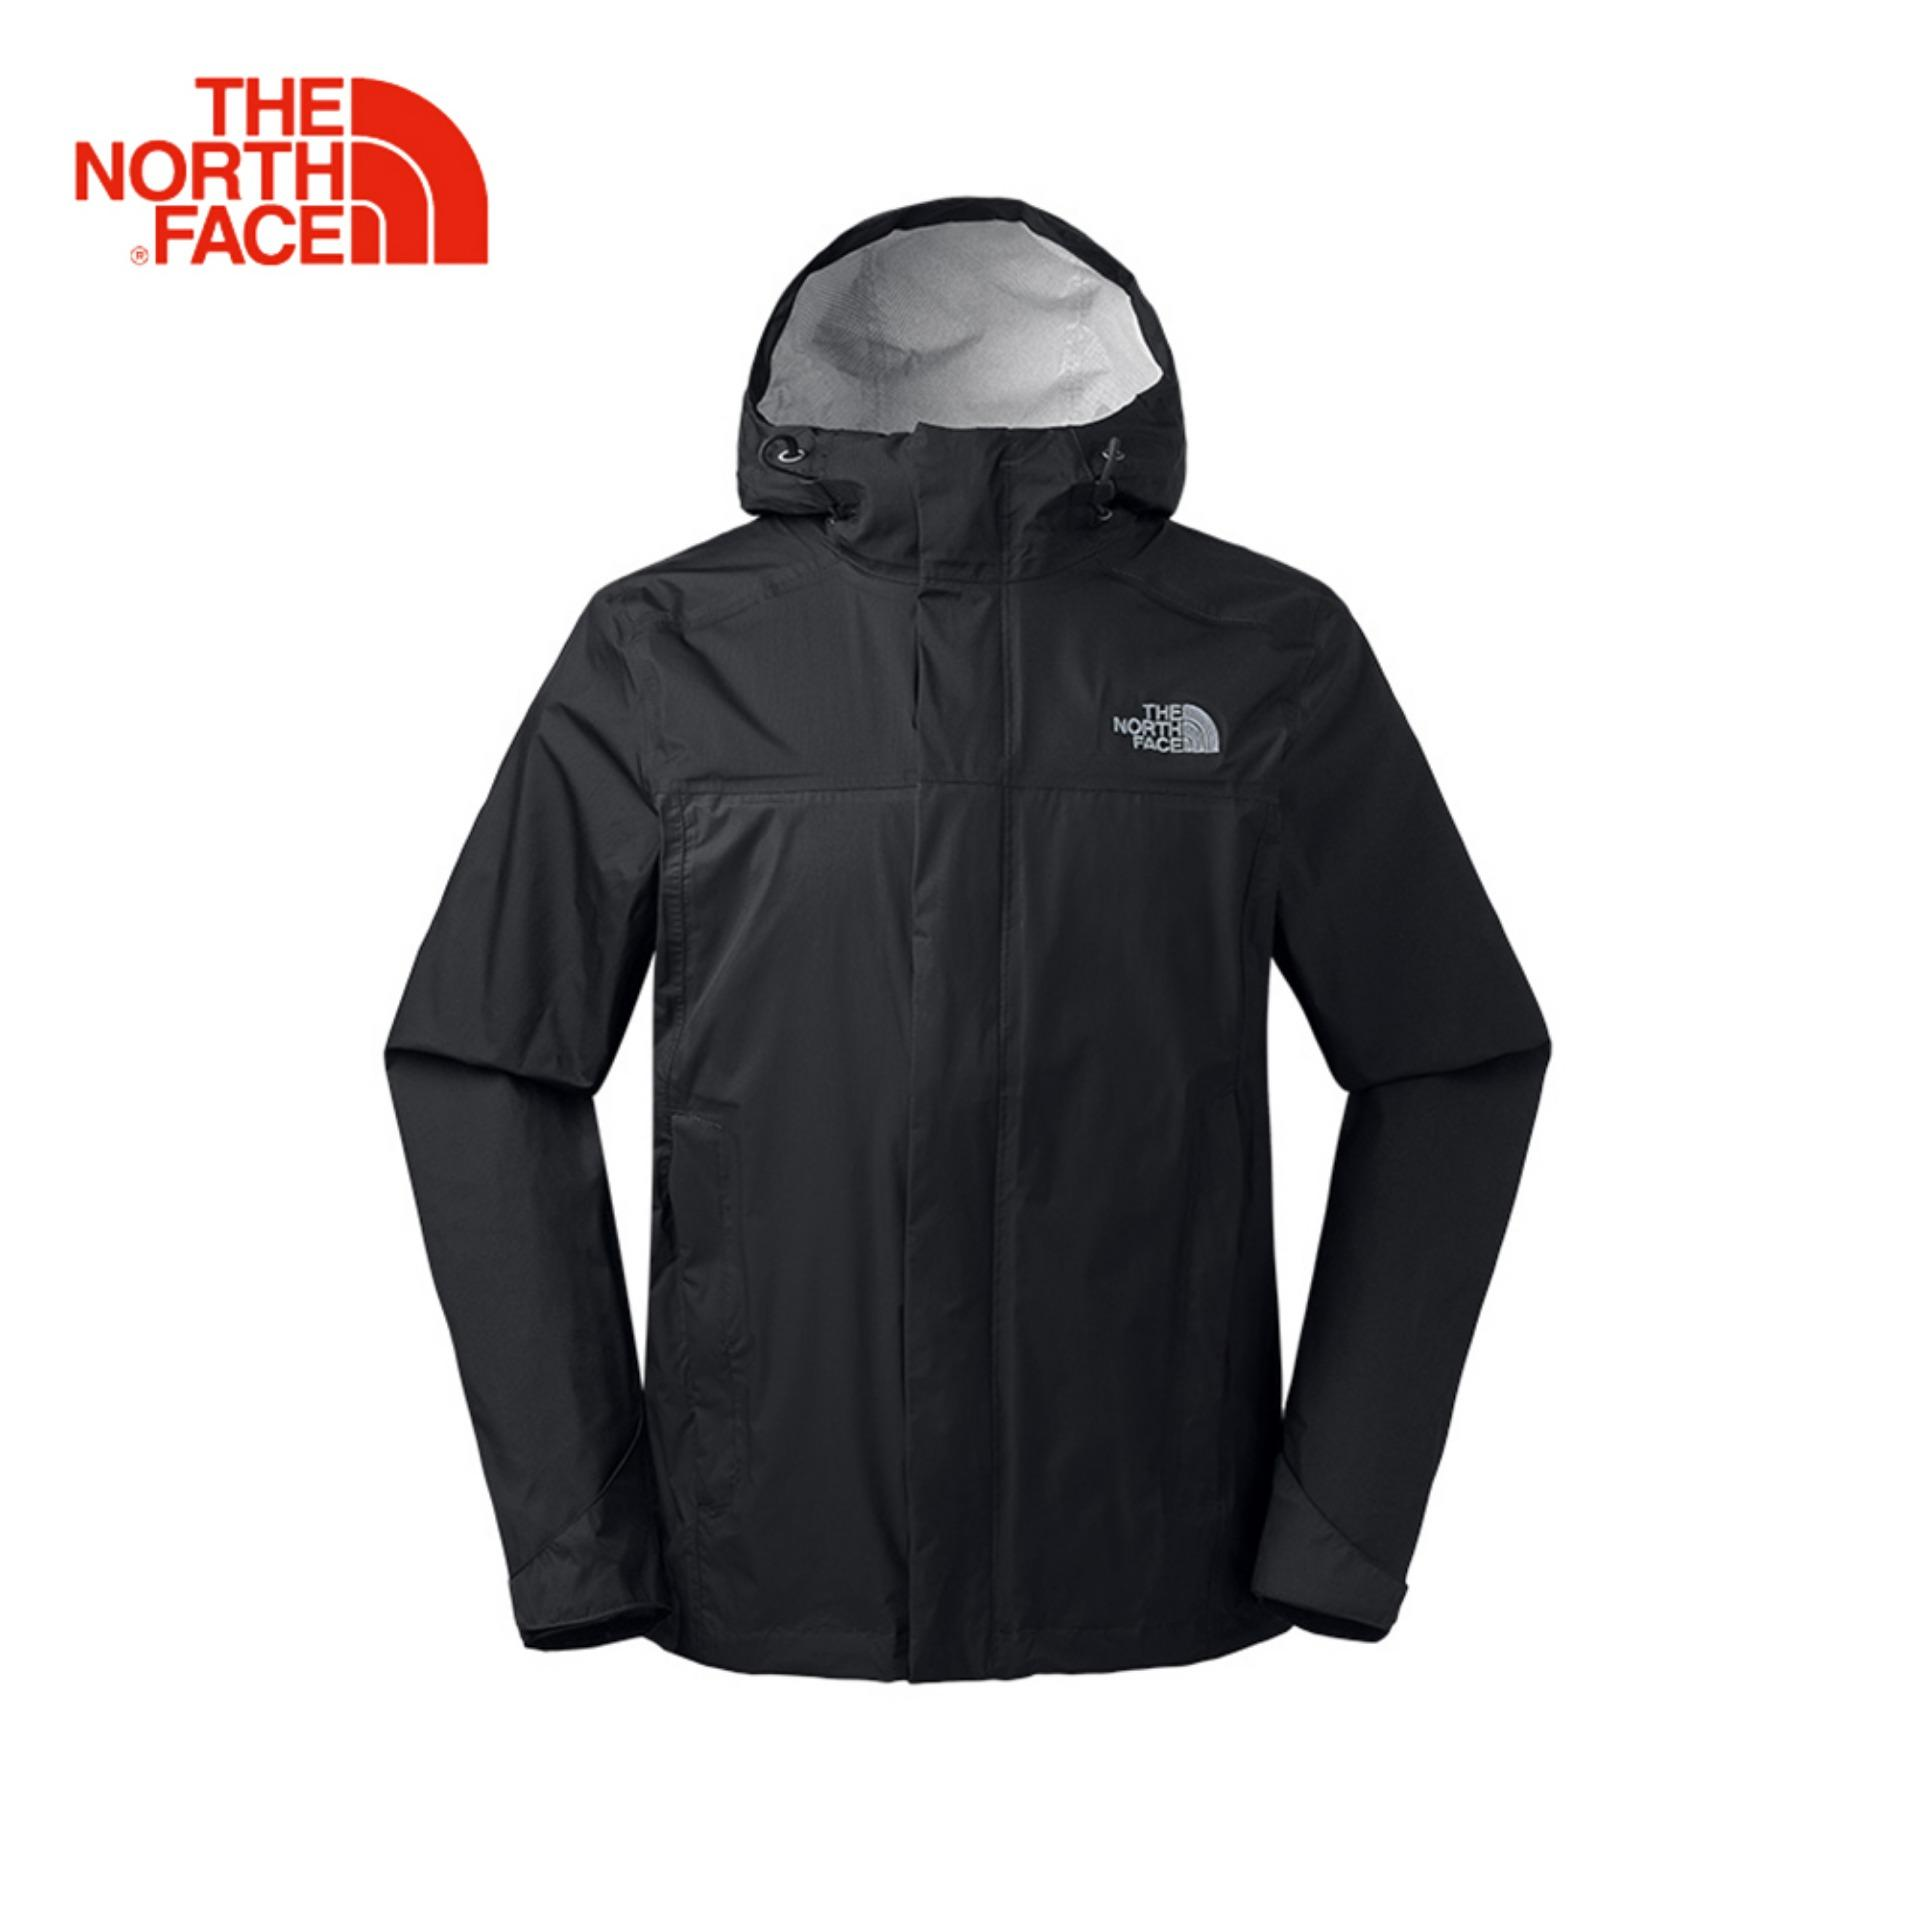 The North Face Philippines  The North Face price list - Laptop ... 080b92eeb